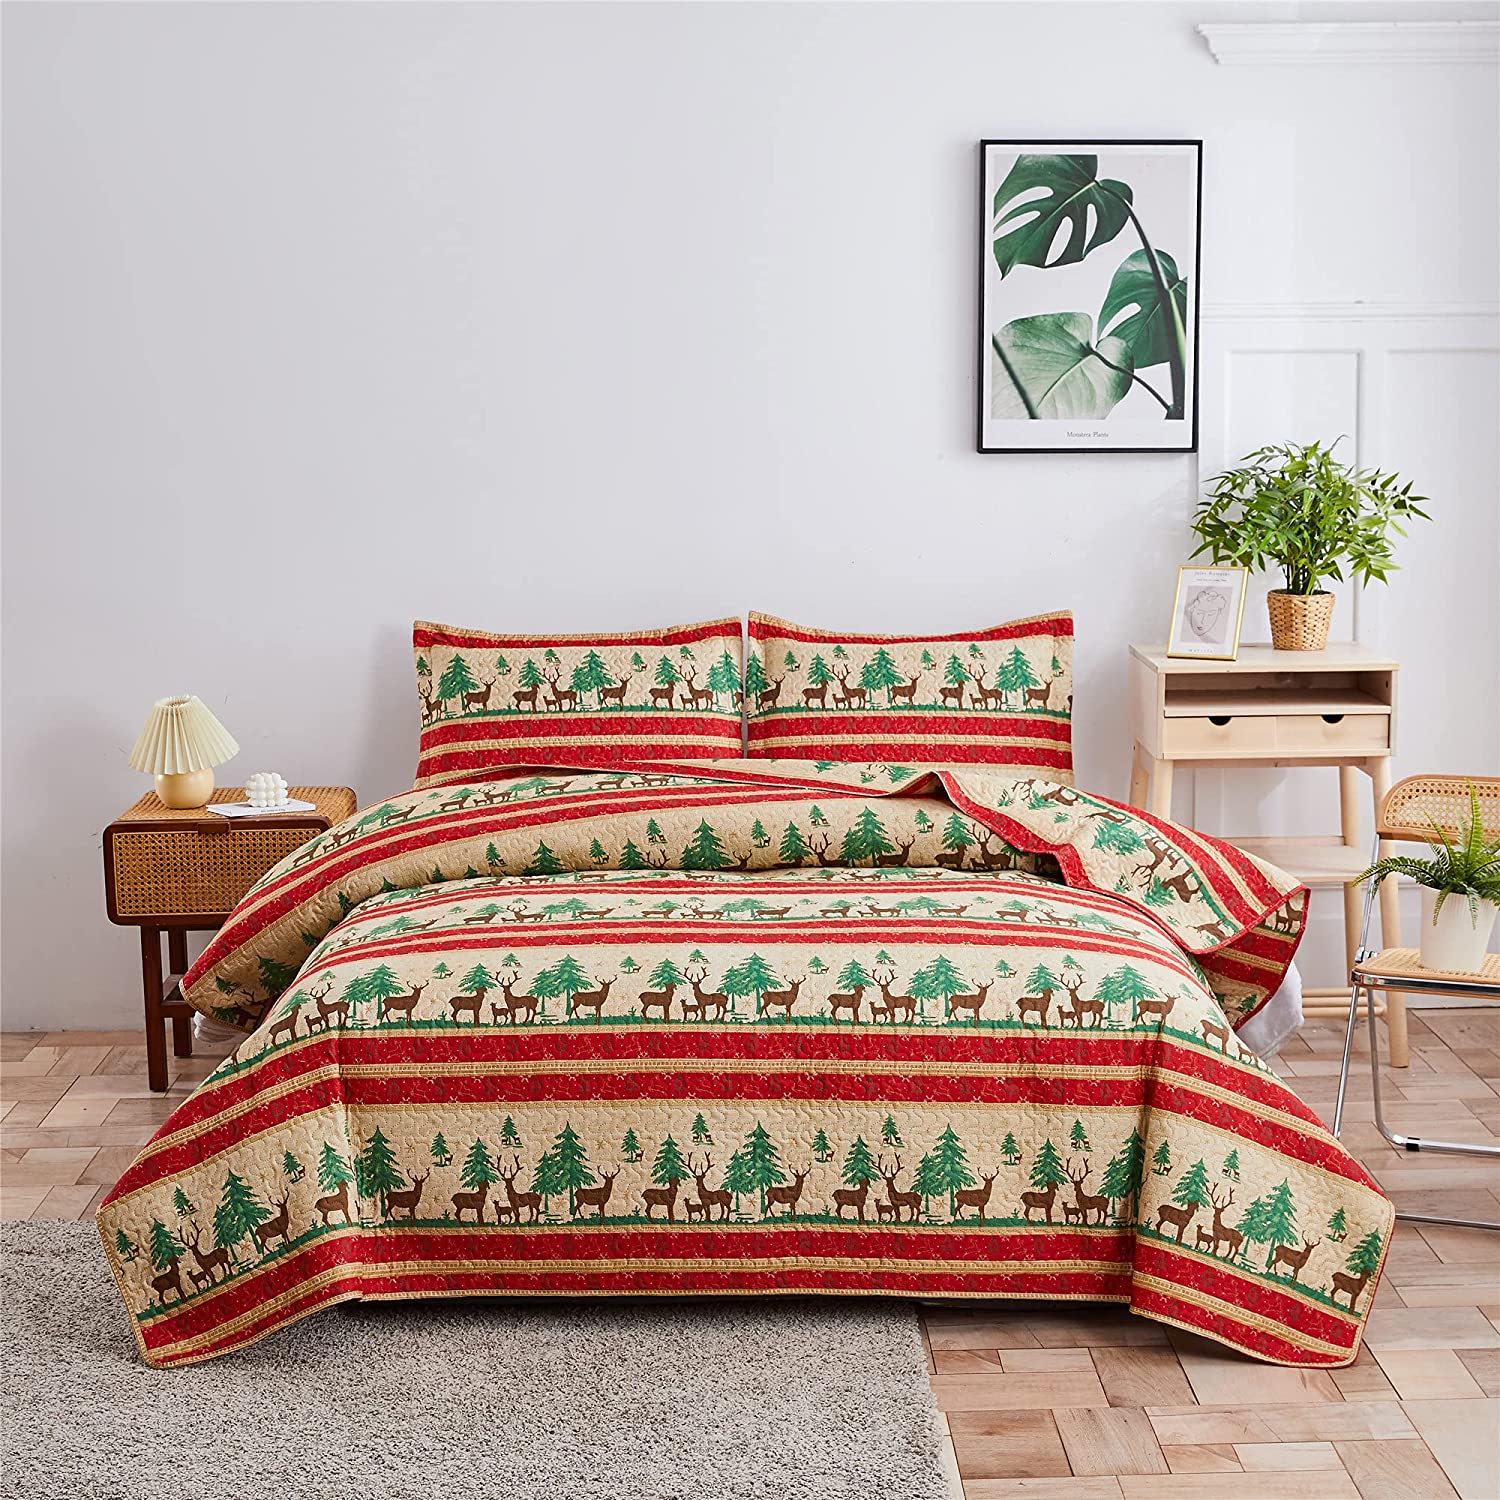 Lodge Bedspread Twin Size Quilt service with Milwaukee Mall Cabin Reve Shams. 3-Piece 2